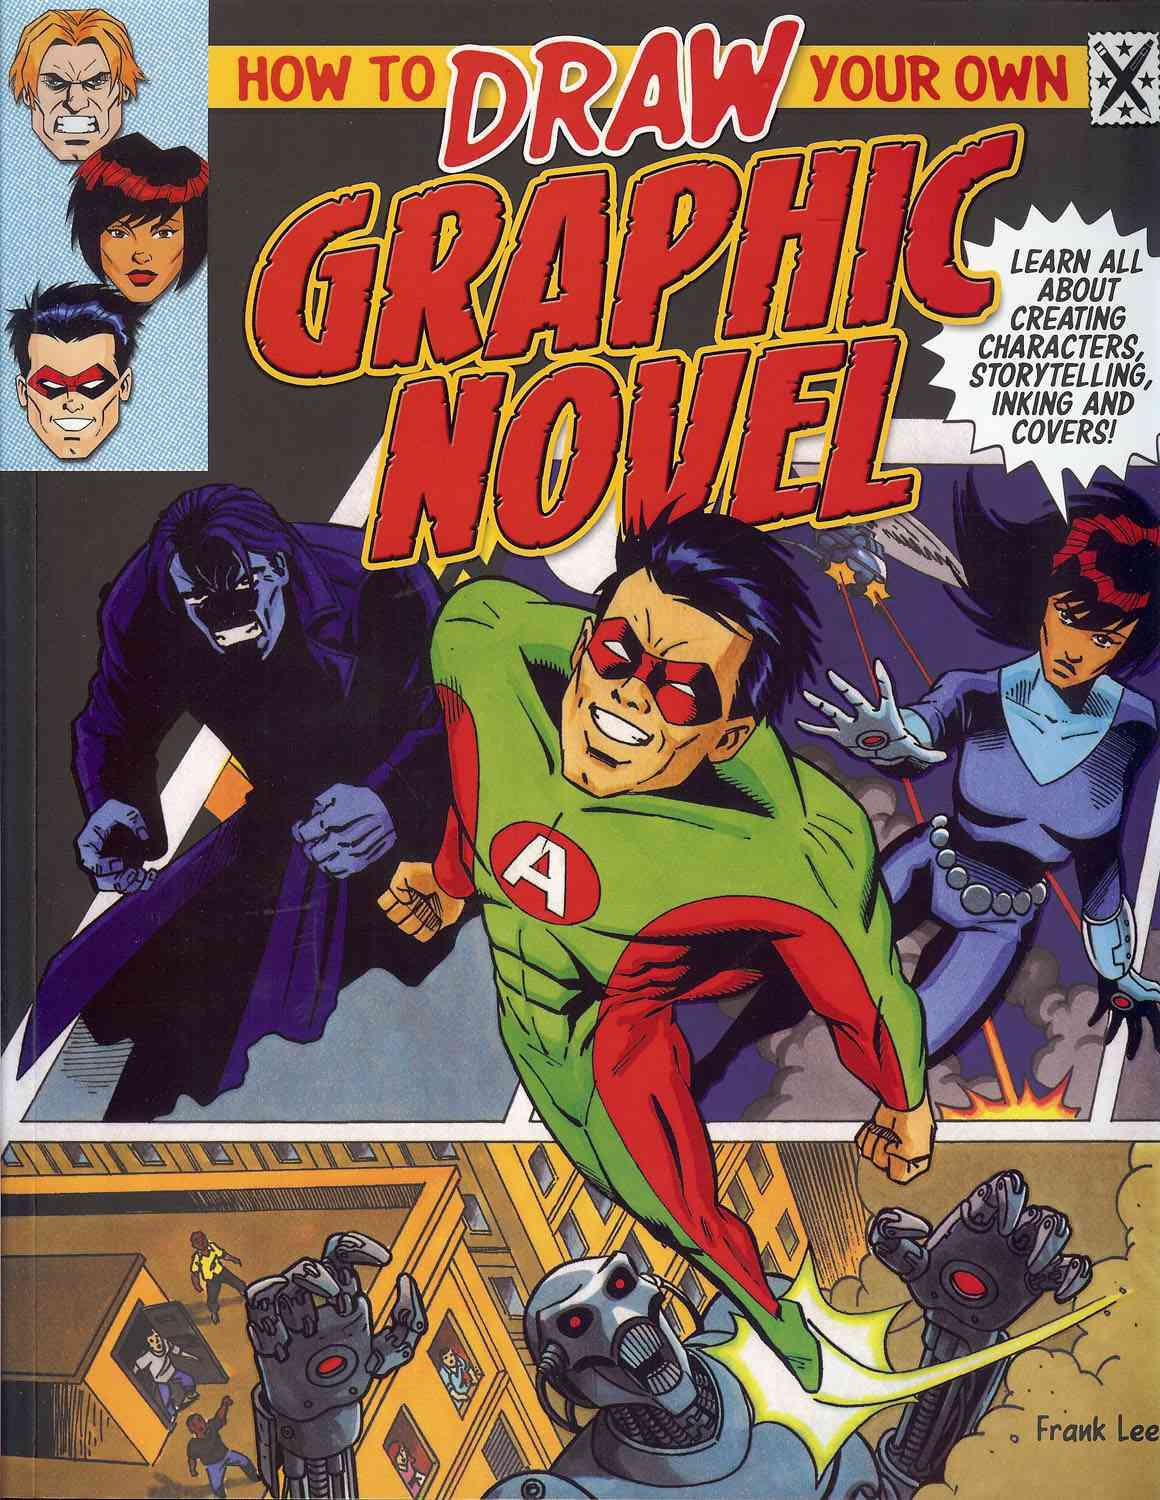 How to Draw Your Own Graphic Novel By Lee, Frank/ Beaumont, Steve